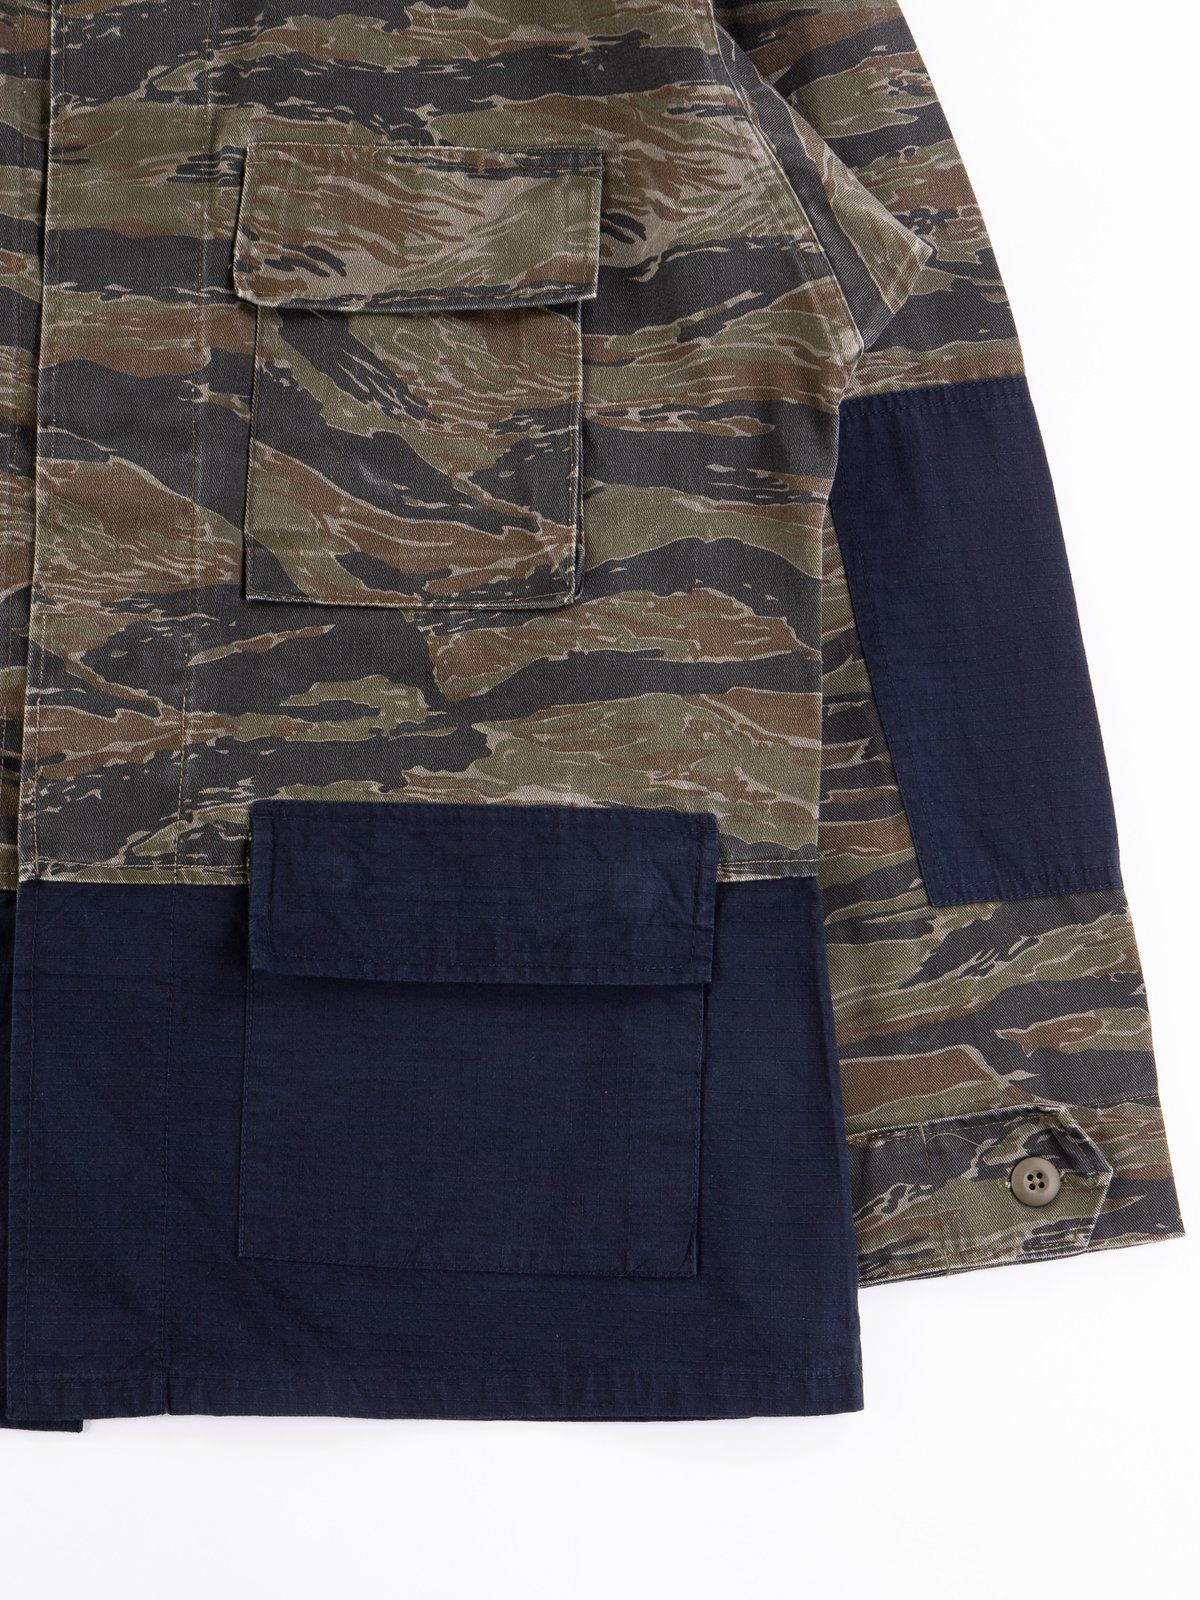 Reworks Camo/Navy Field Jacket - Image 3